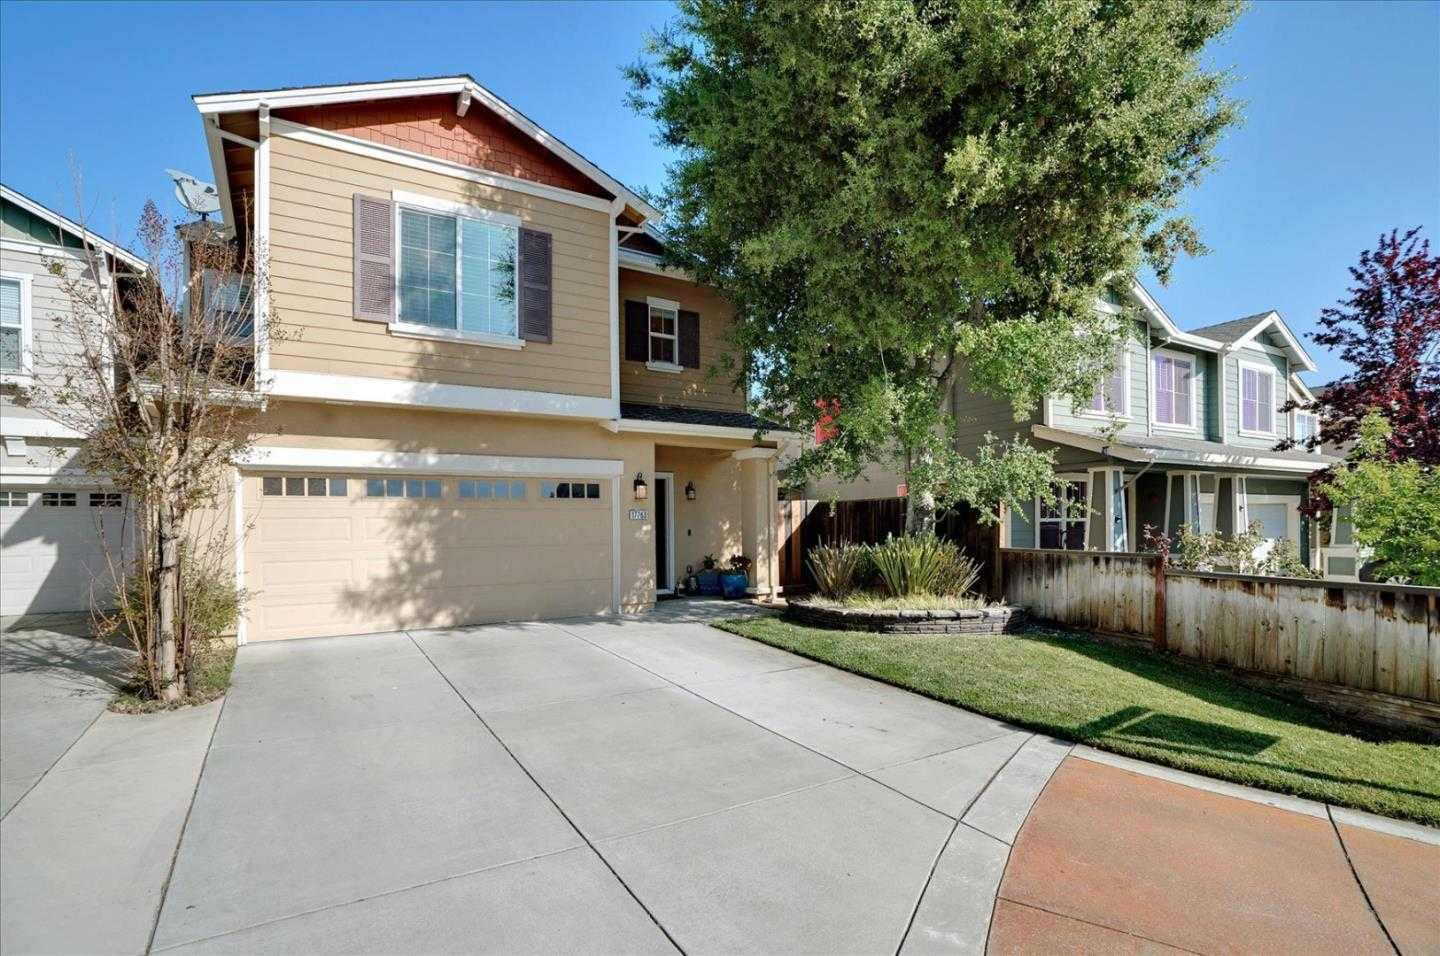 $865,000 - 4Br/3Ba -  for Sale in Morgan Hill